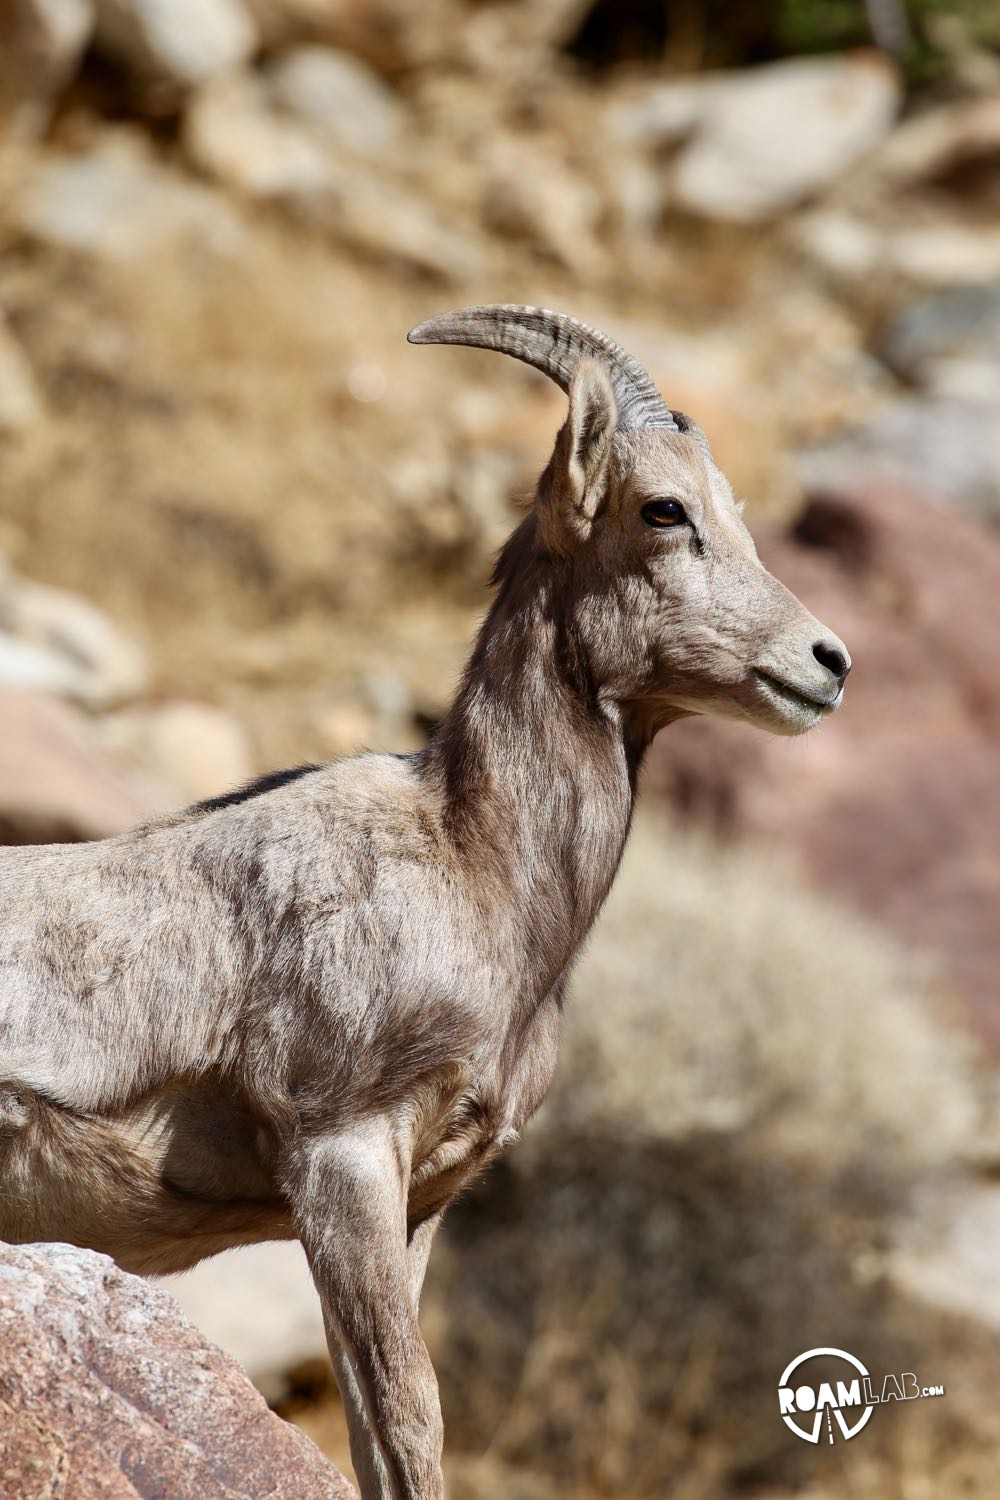 Portrait of a Big Horn Sheep along Borrego Palm Canyon Trail in Anza-Borrego Desert State Park